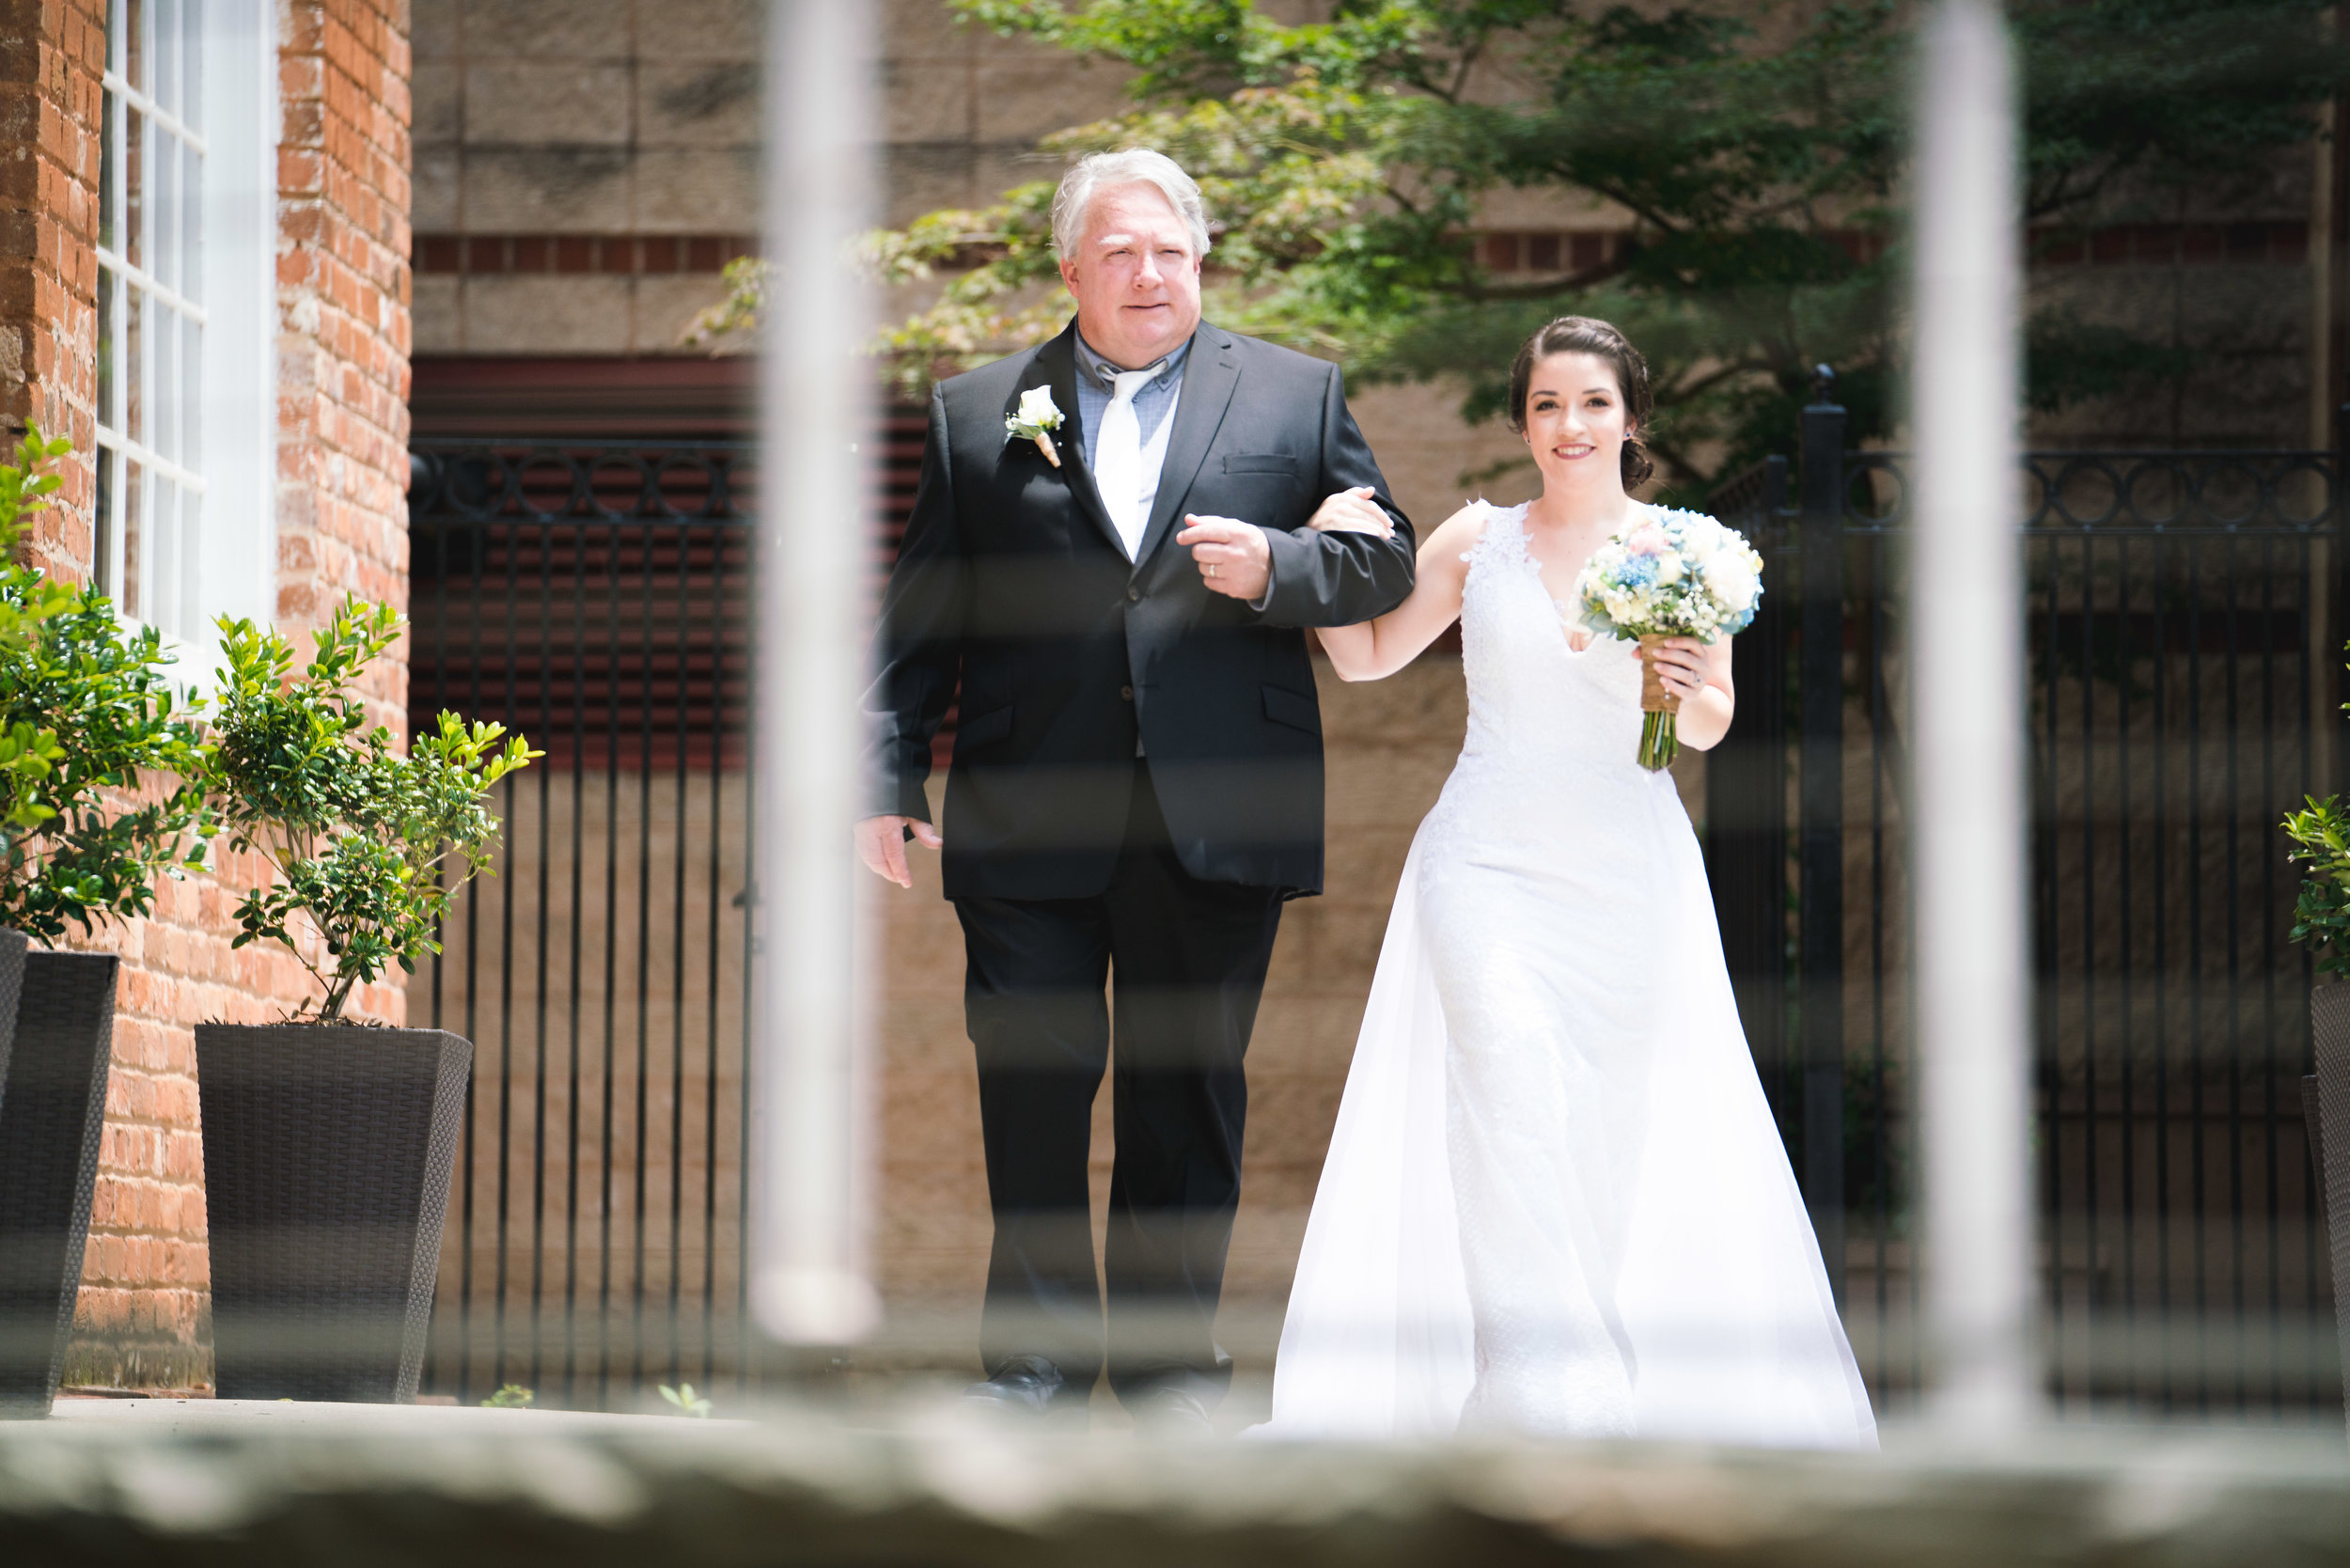 Father and bride entering wedding, Larkins on the River Downtown Greenville Wedding